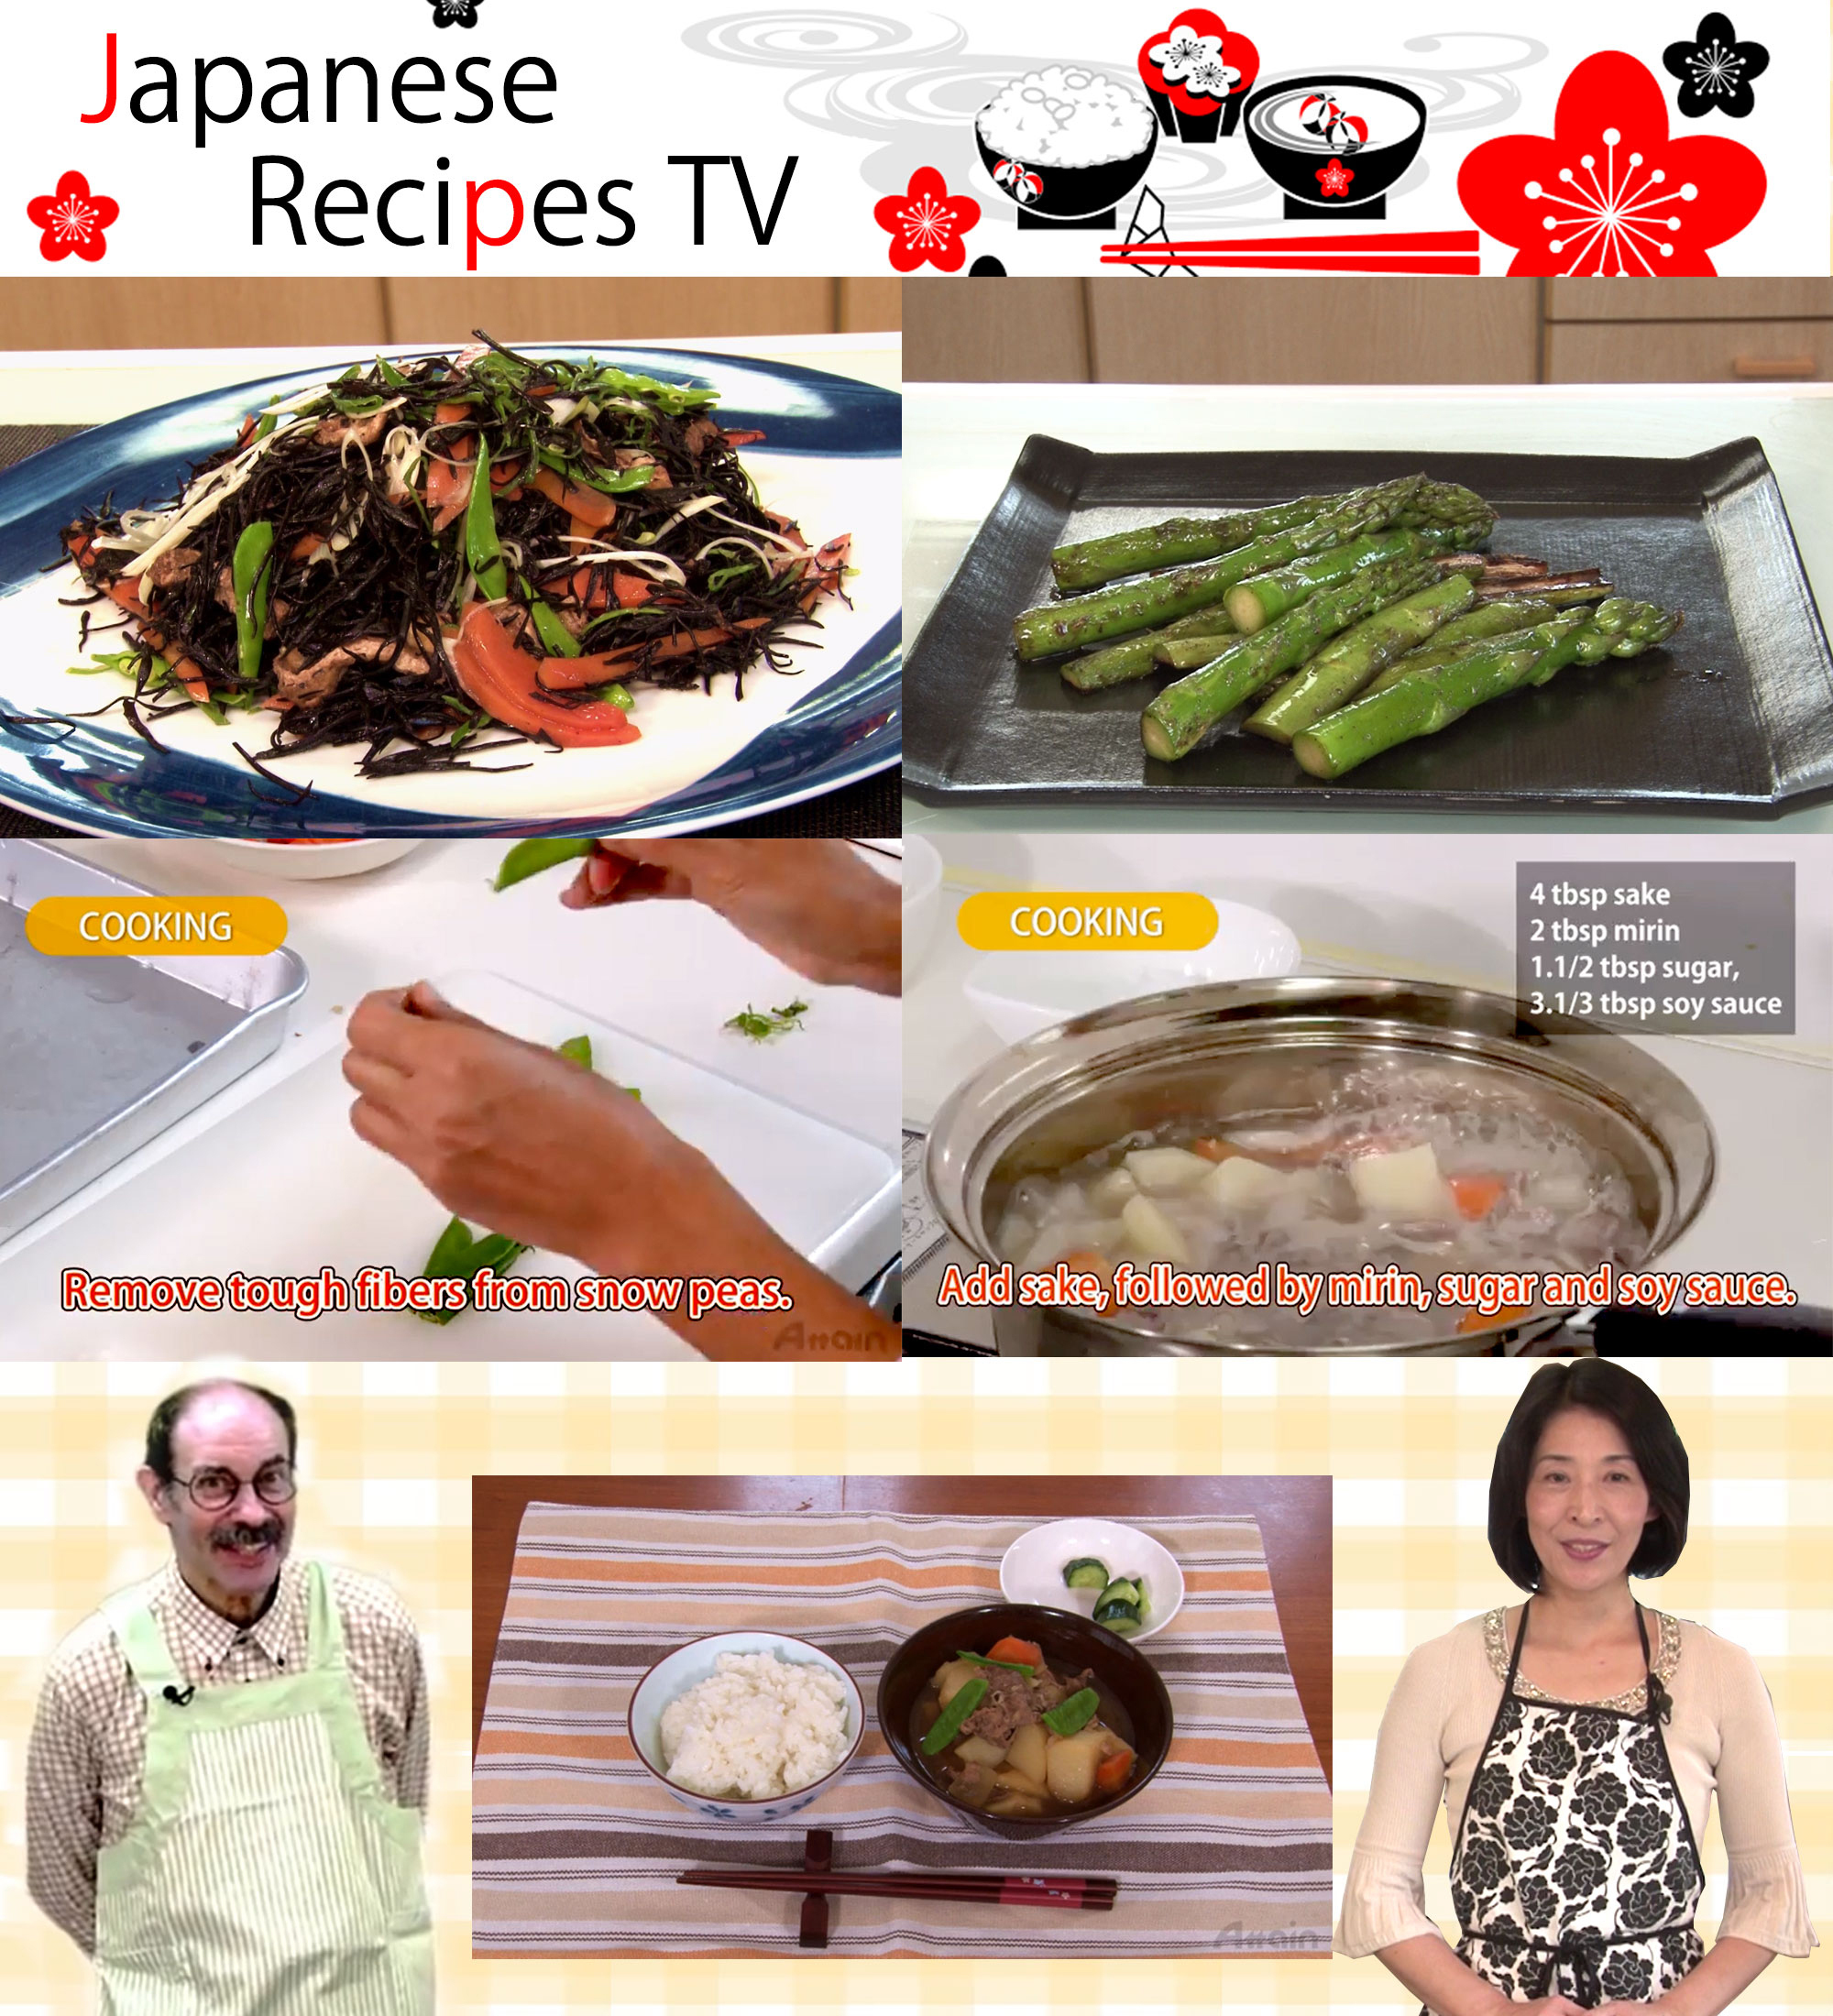 Attain co starts online channel japanese recipes tv business wire forumfinder Image collections